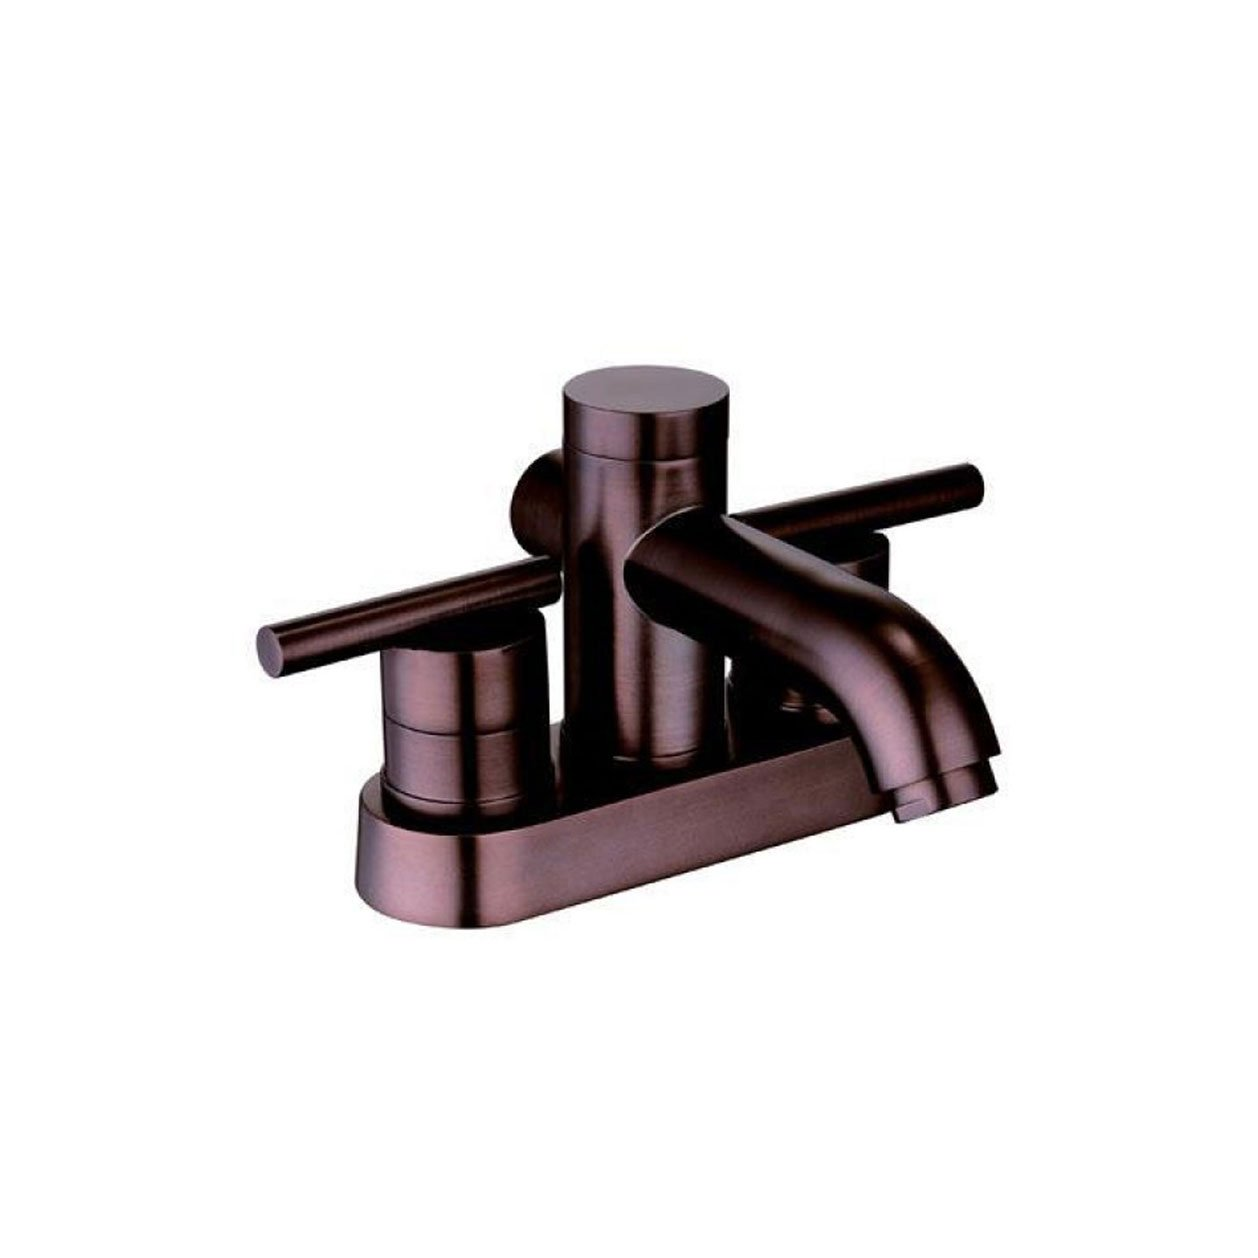 Yosemite Home Decor YP2812-ORB Two Handle Centerset Lavatory Faucet with Pop-Up Drain, Oil Rubbed Bronze